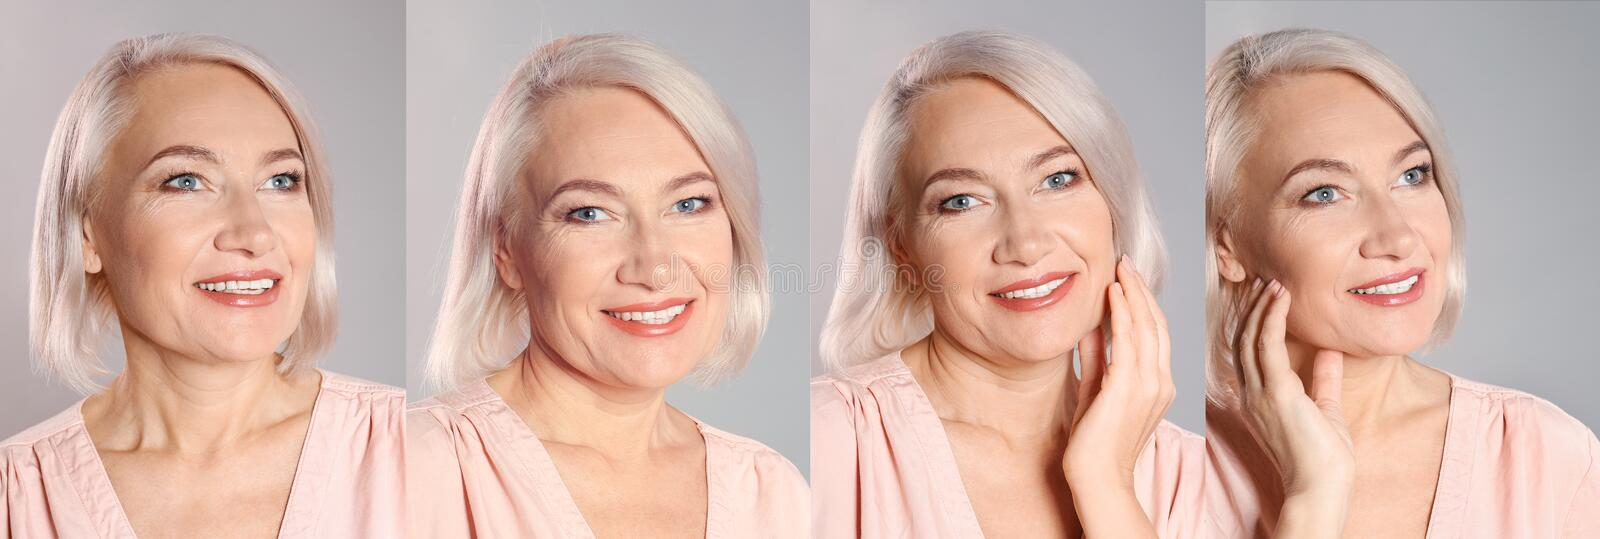 Collage of mature woman with beautiful face stock photography